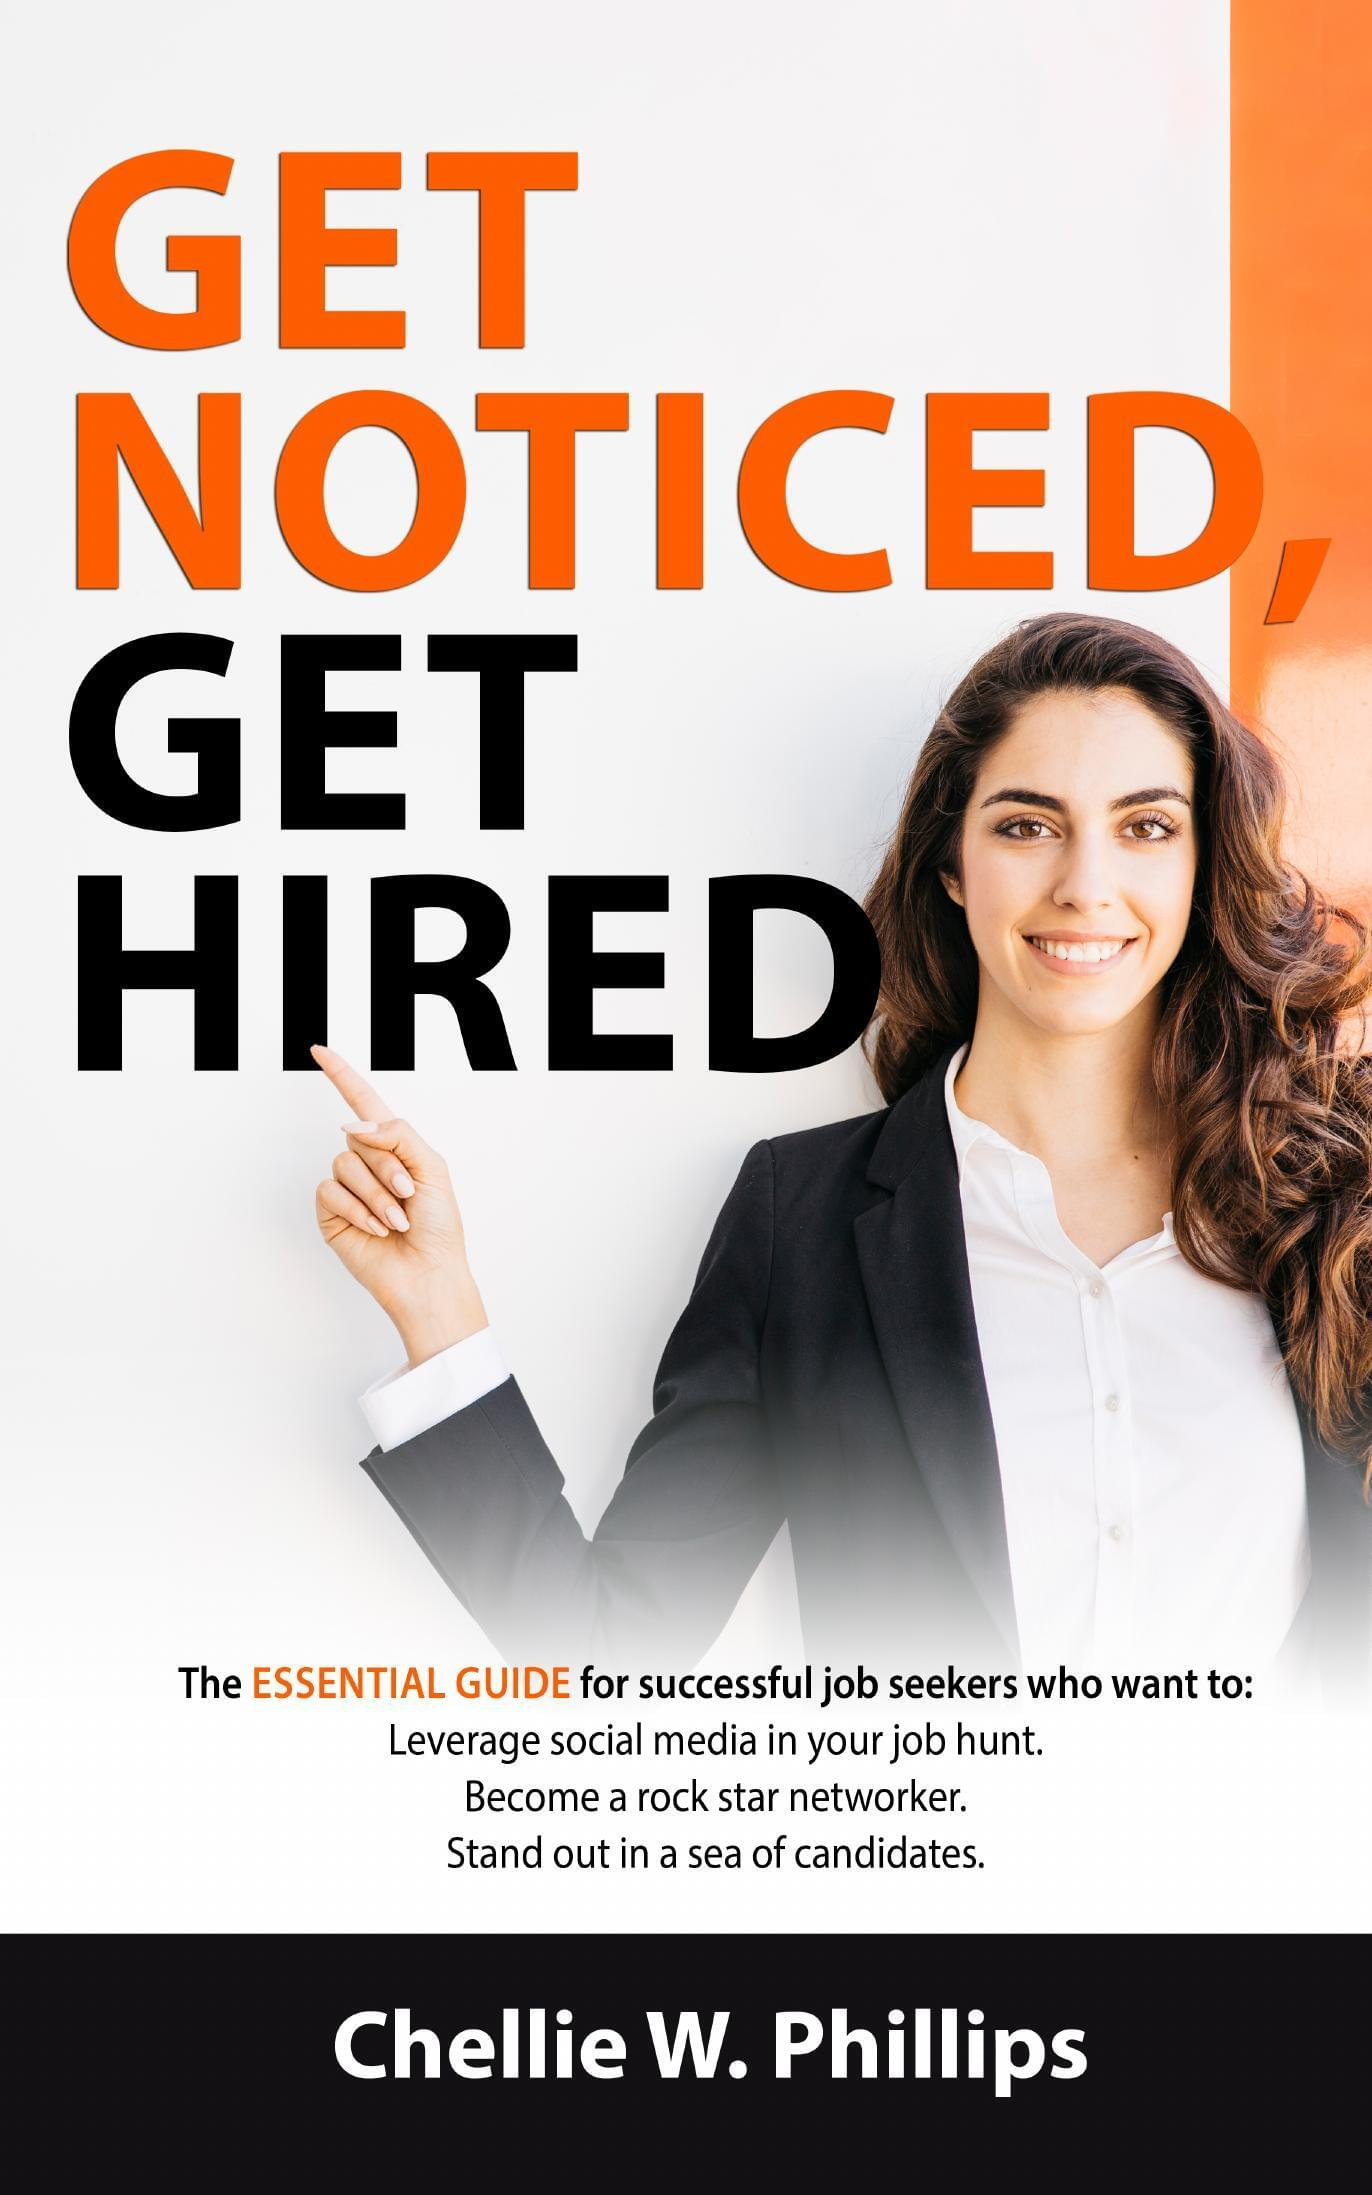 Get Noticed, Get Hired by Chellie Phillips